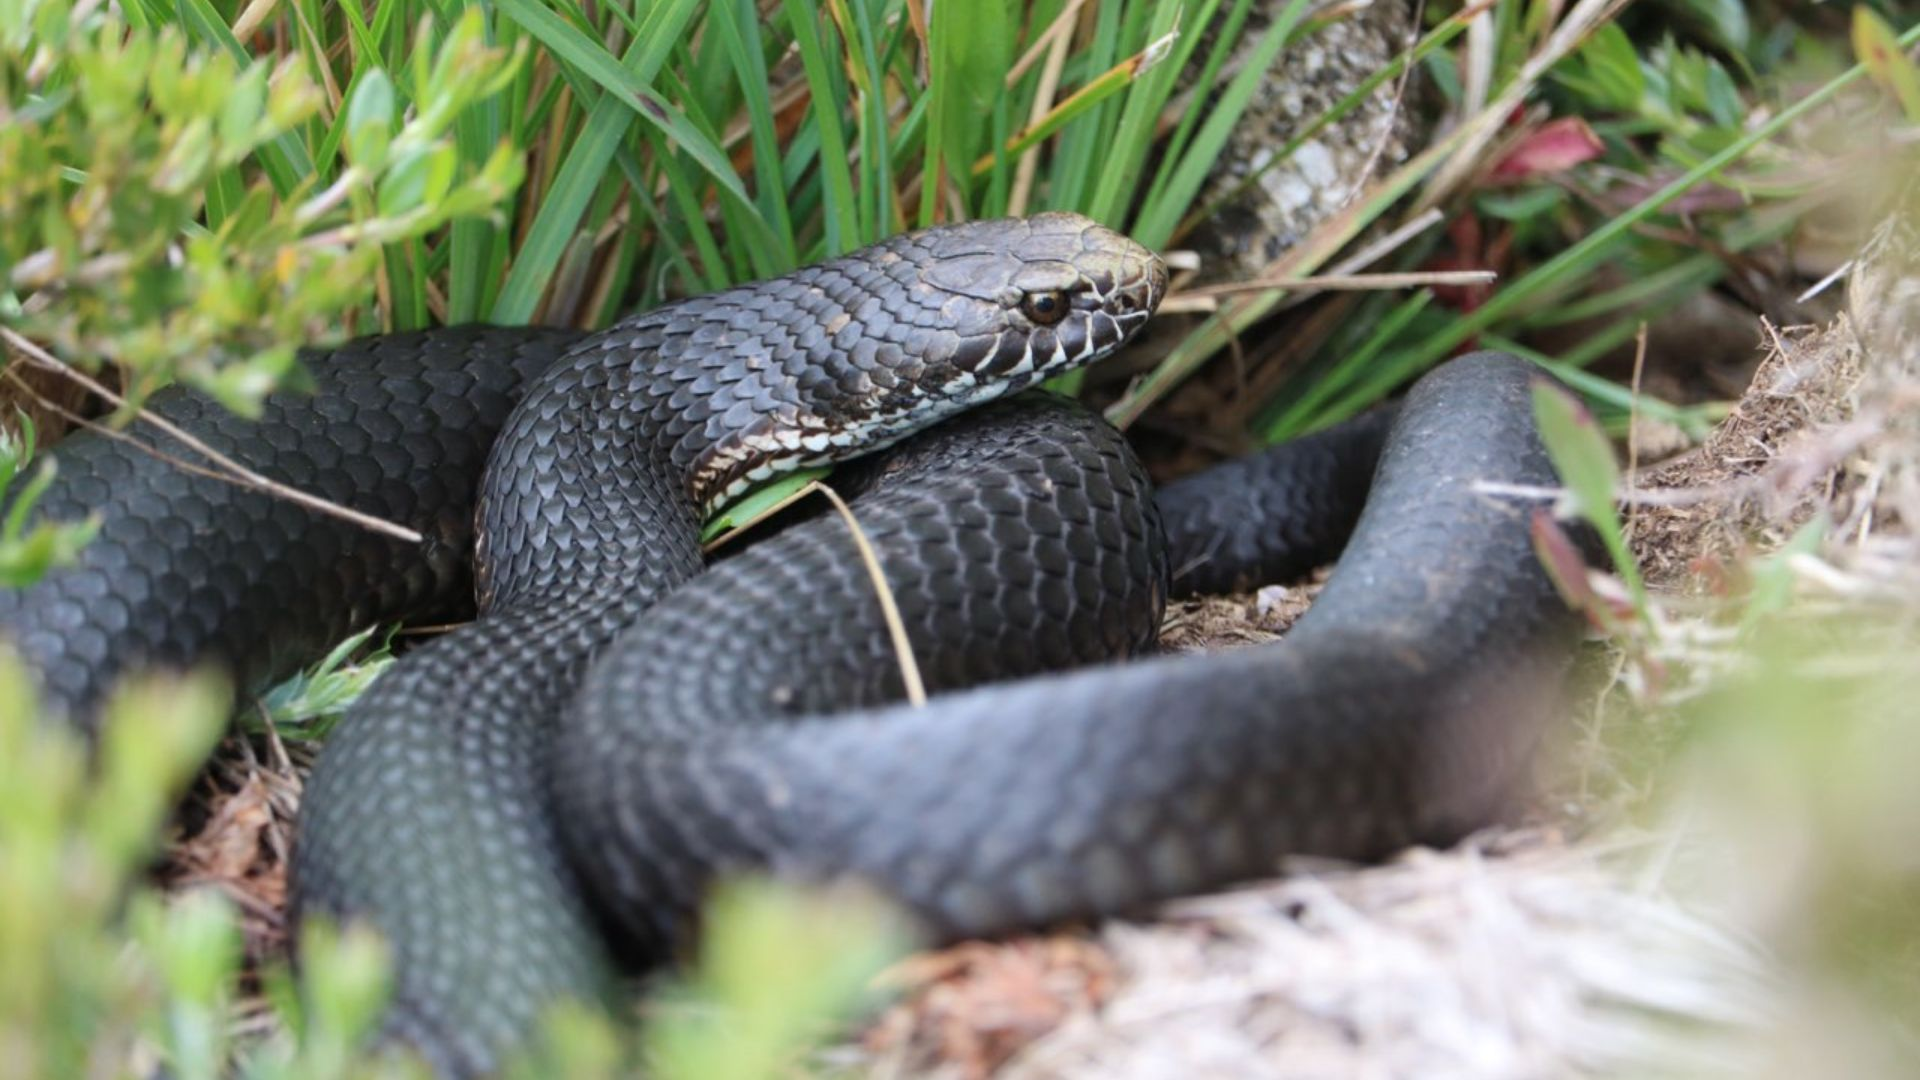 Aggressive? Poisonous? Deadly? Experts debunk myths about Australian snakes